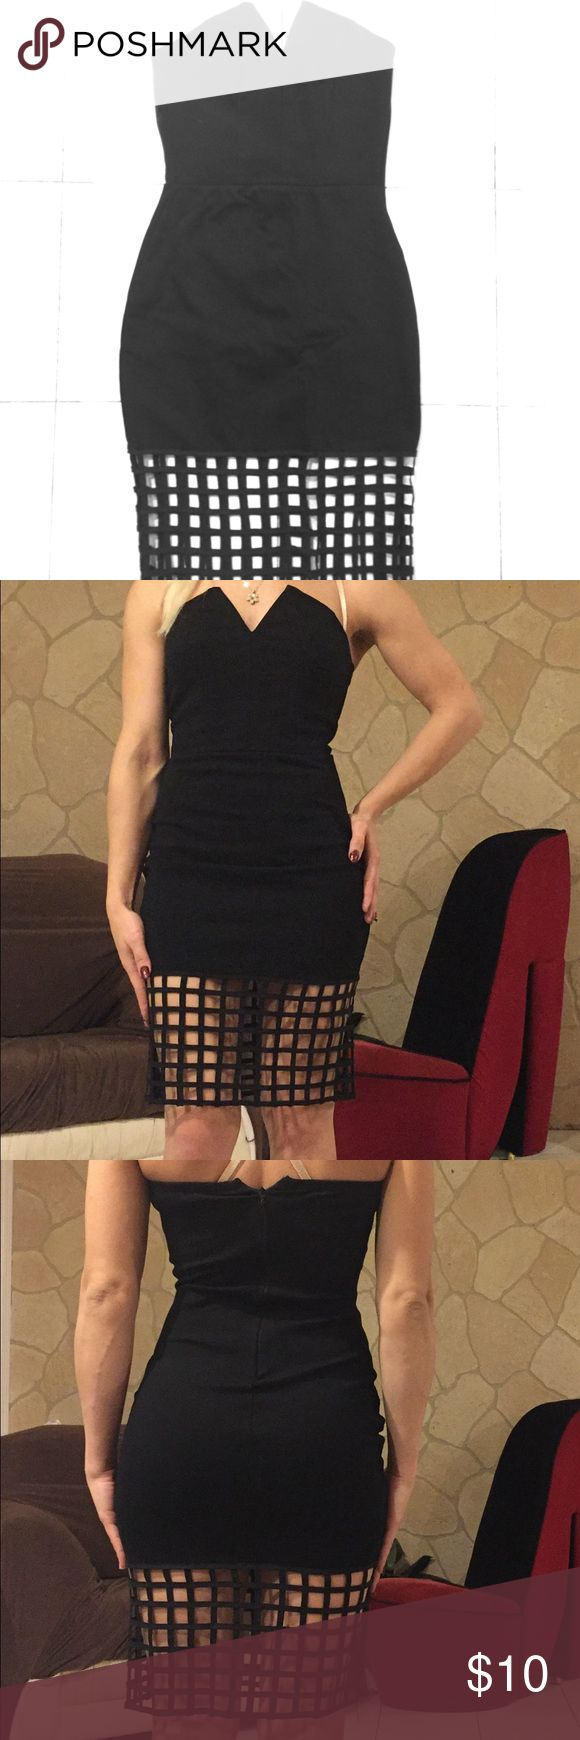 Mystic - Fitted Black Eyelet Bodycon Dress Size: S Mystic - Women's Fitted Black Eyelet Bodycon Dress - Size: Small (S). Worn a few times but in great condition still. Pairs well with a nice pair of heels/pumps.   #mystic #fitteddress #littleblackdress #eyelet #strapless #bodycondress #girlsnightoutdress #partydress #sexydress Mystic Dresses Strapless